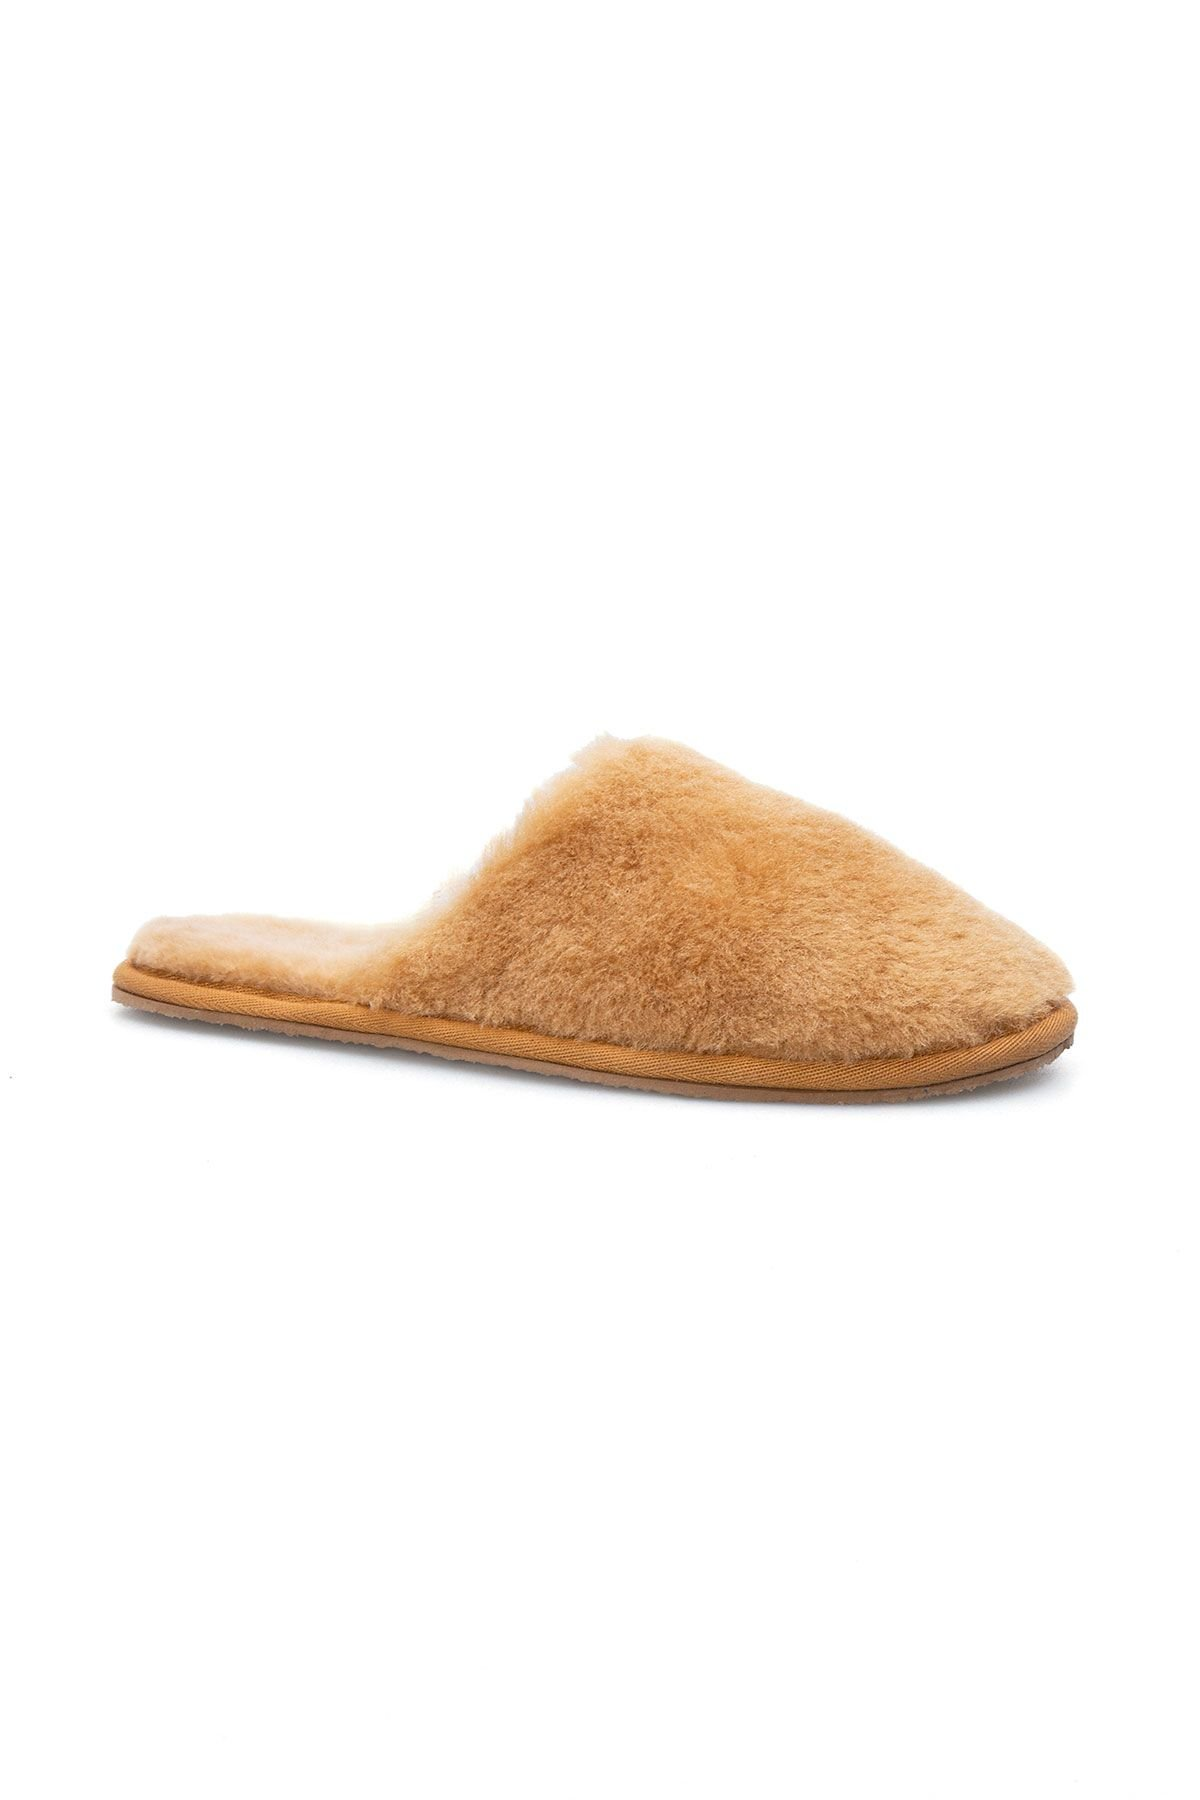 Pegia Women Shearling Slippers 191092 Yellow